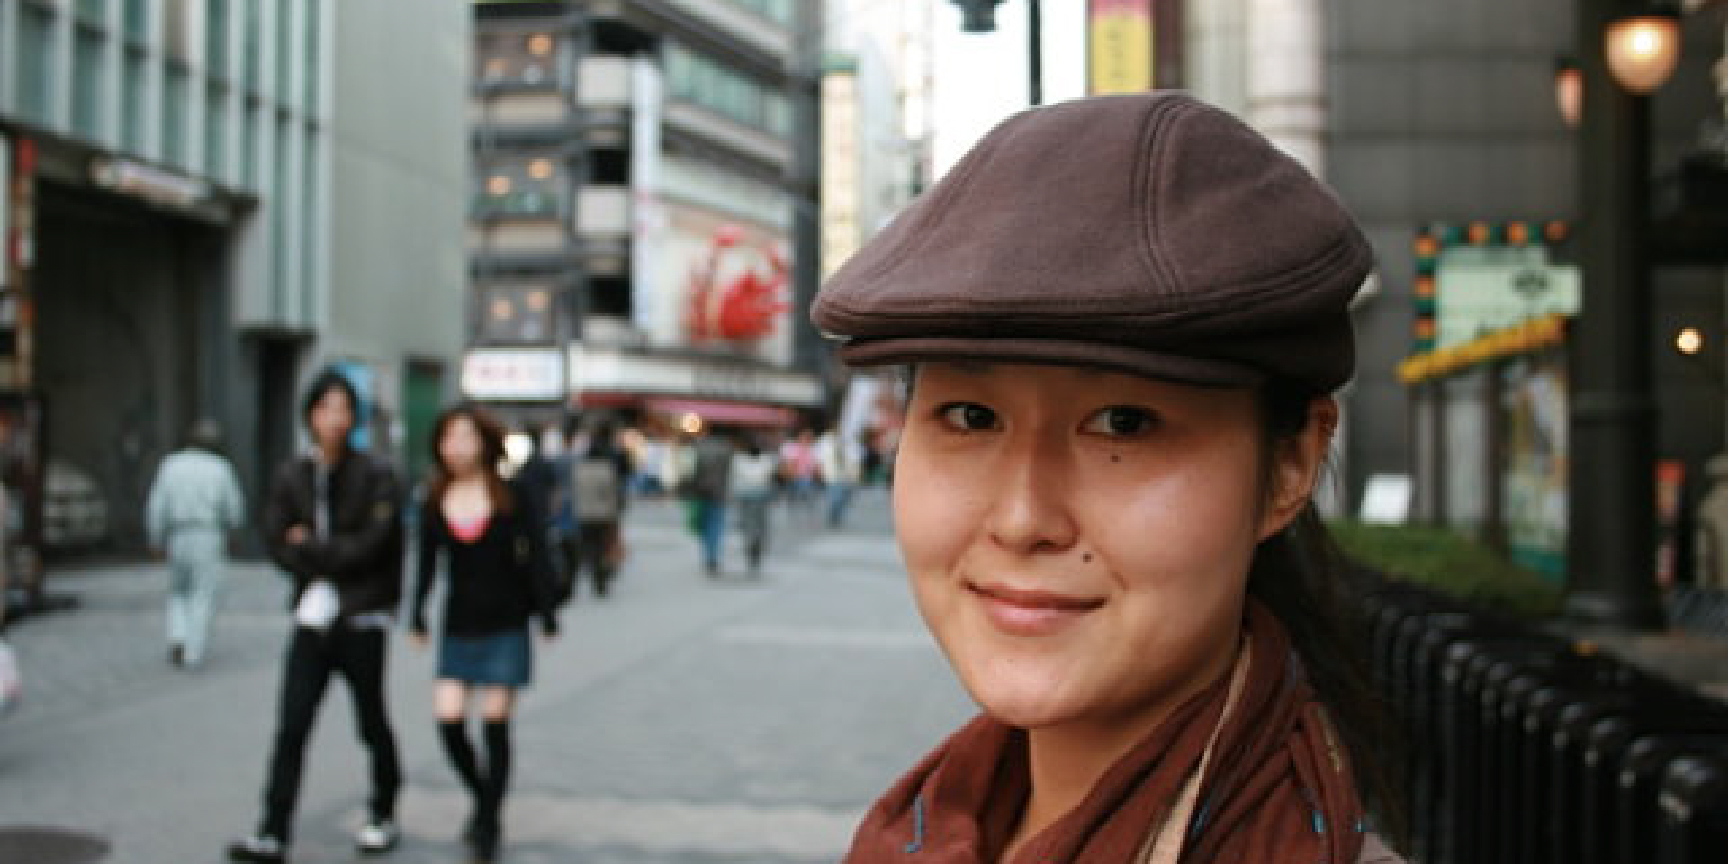 A young woman in Tokyo